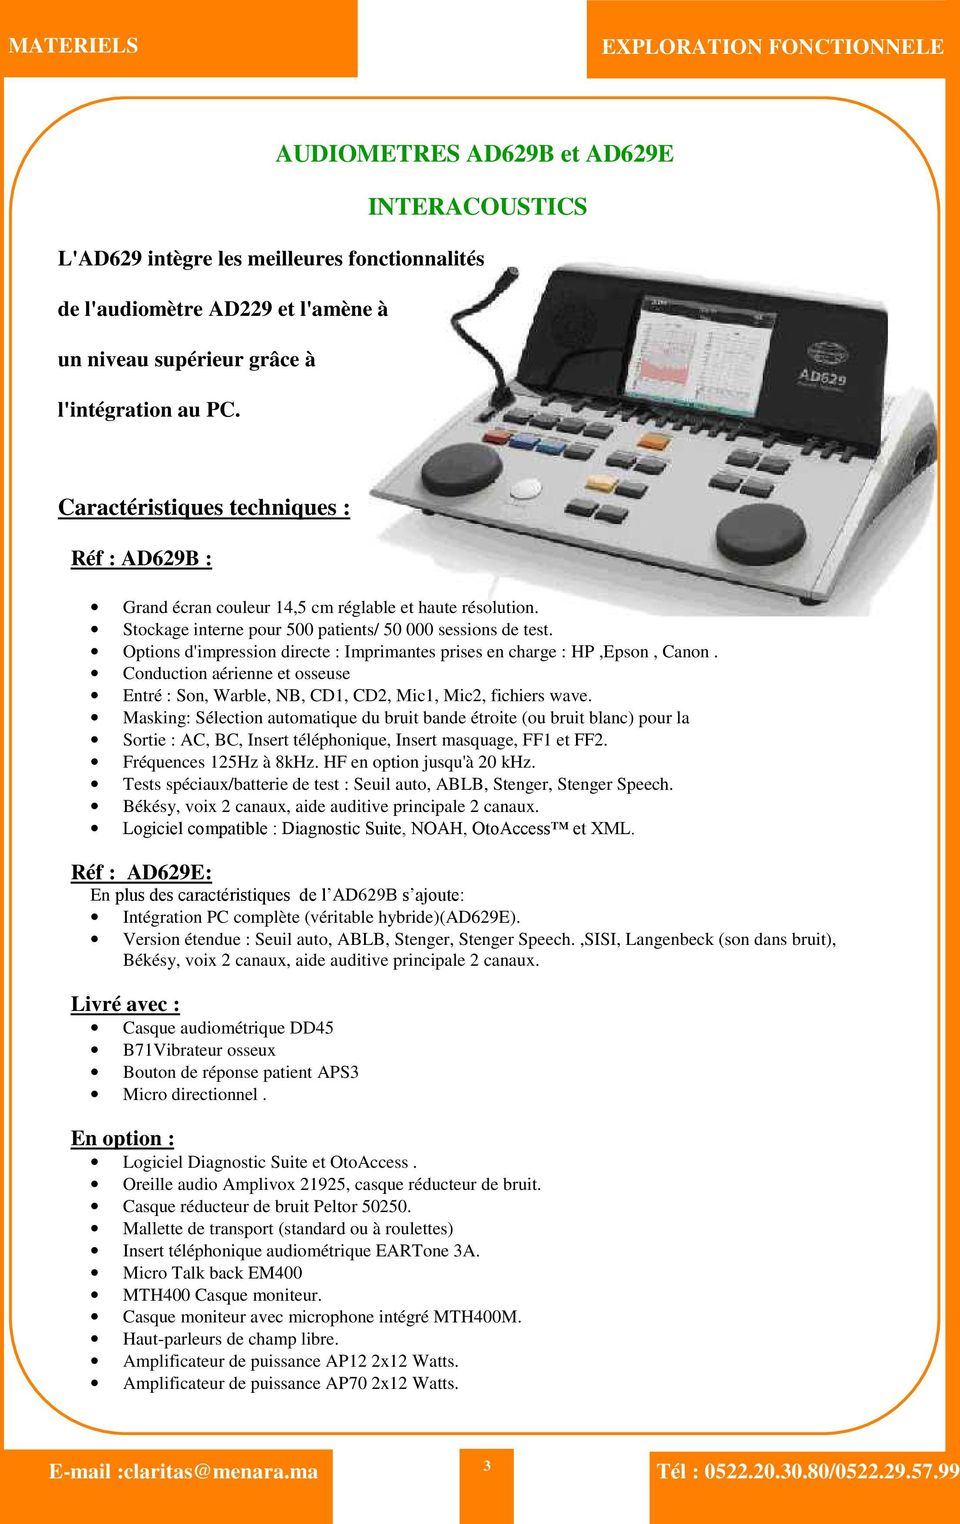 Options d'impression directe : Imprimantes prises en charge : HP,Epson, Canon. Conduction aérienne et osseuse Entré : Son, Warble, NB, CD1, CD2, Mic1, Mic2, fichiers wave.